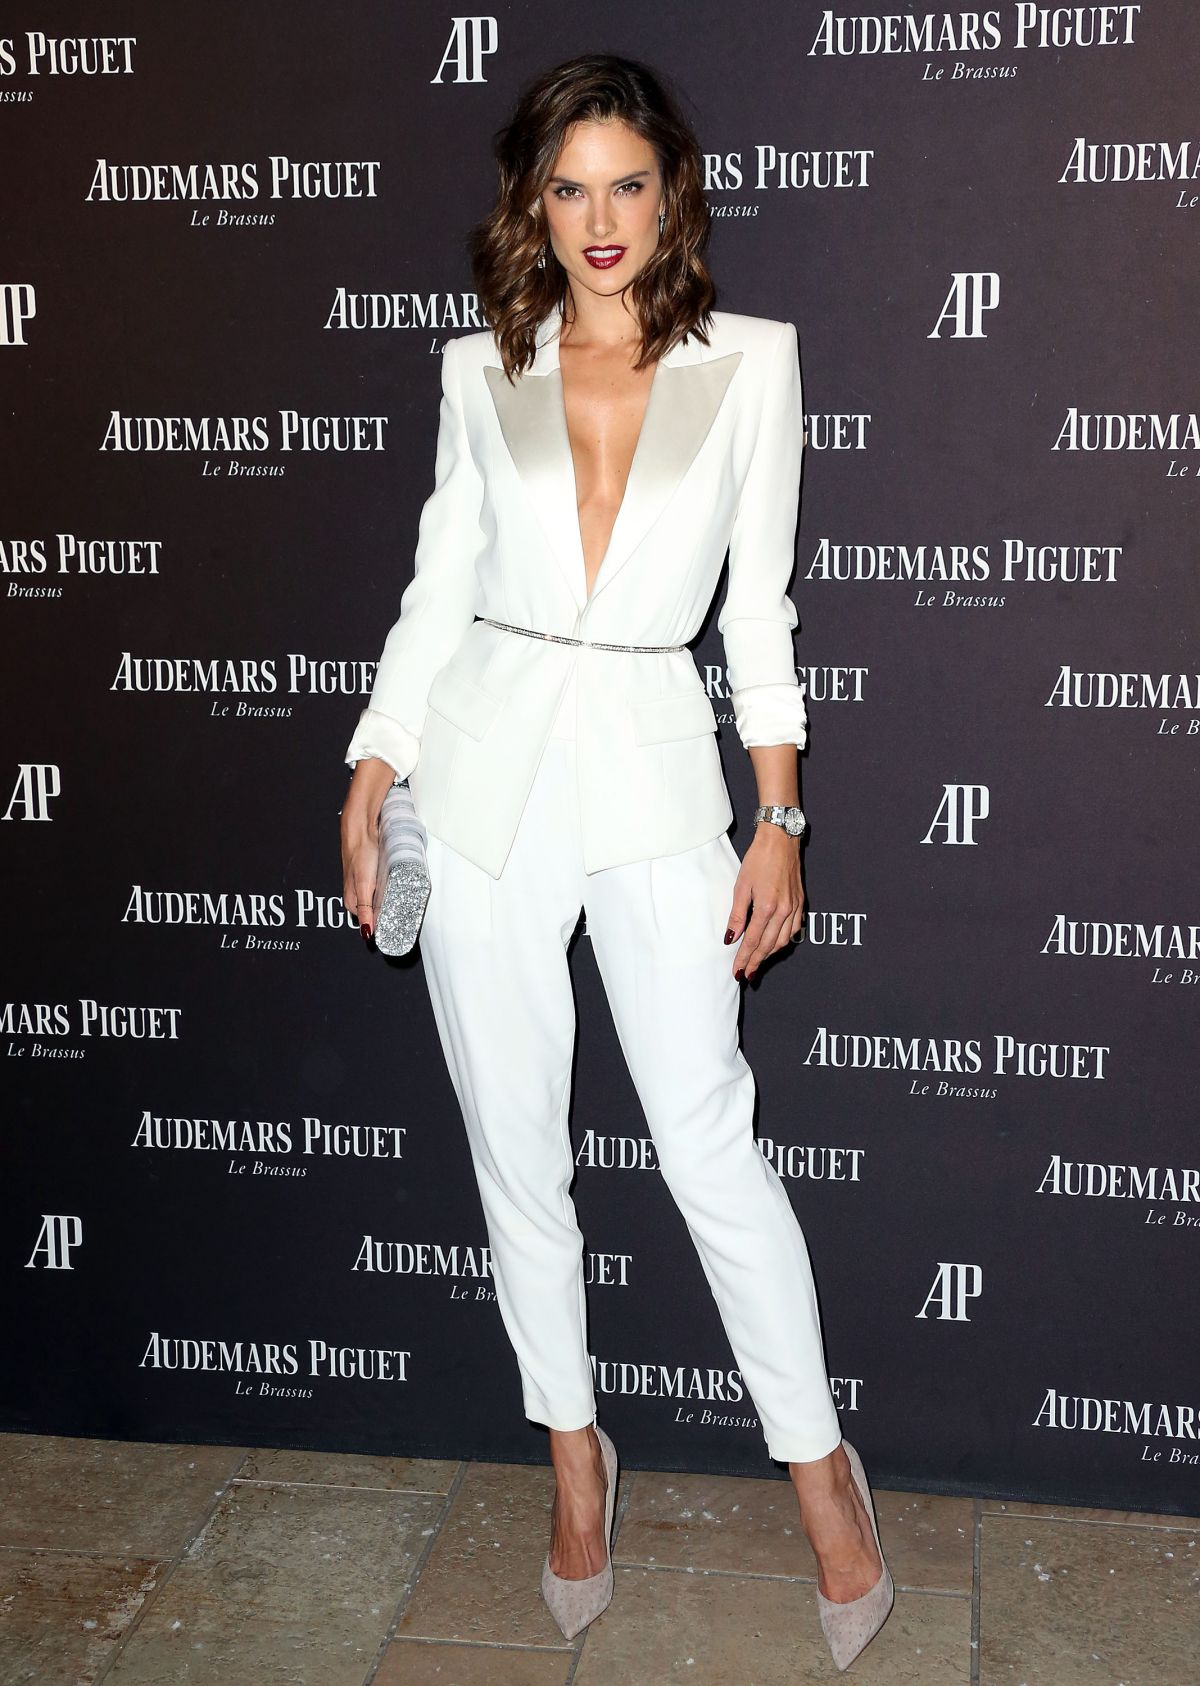 LFM2. CAPÍTULO 42 Alessandra-ambrosio-at-audemars-piguet-celebrates-grand-opening-of-rodeo-drive-boutique-in-los-angeles-12-09-2015_3